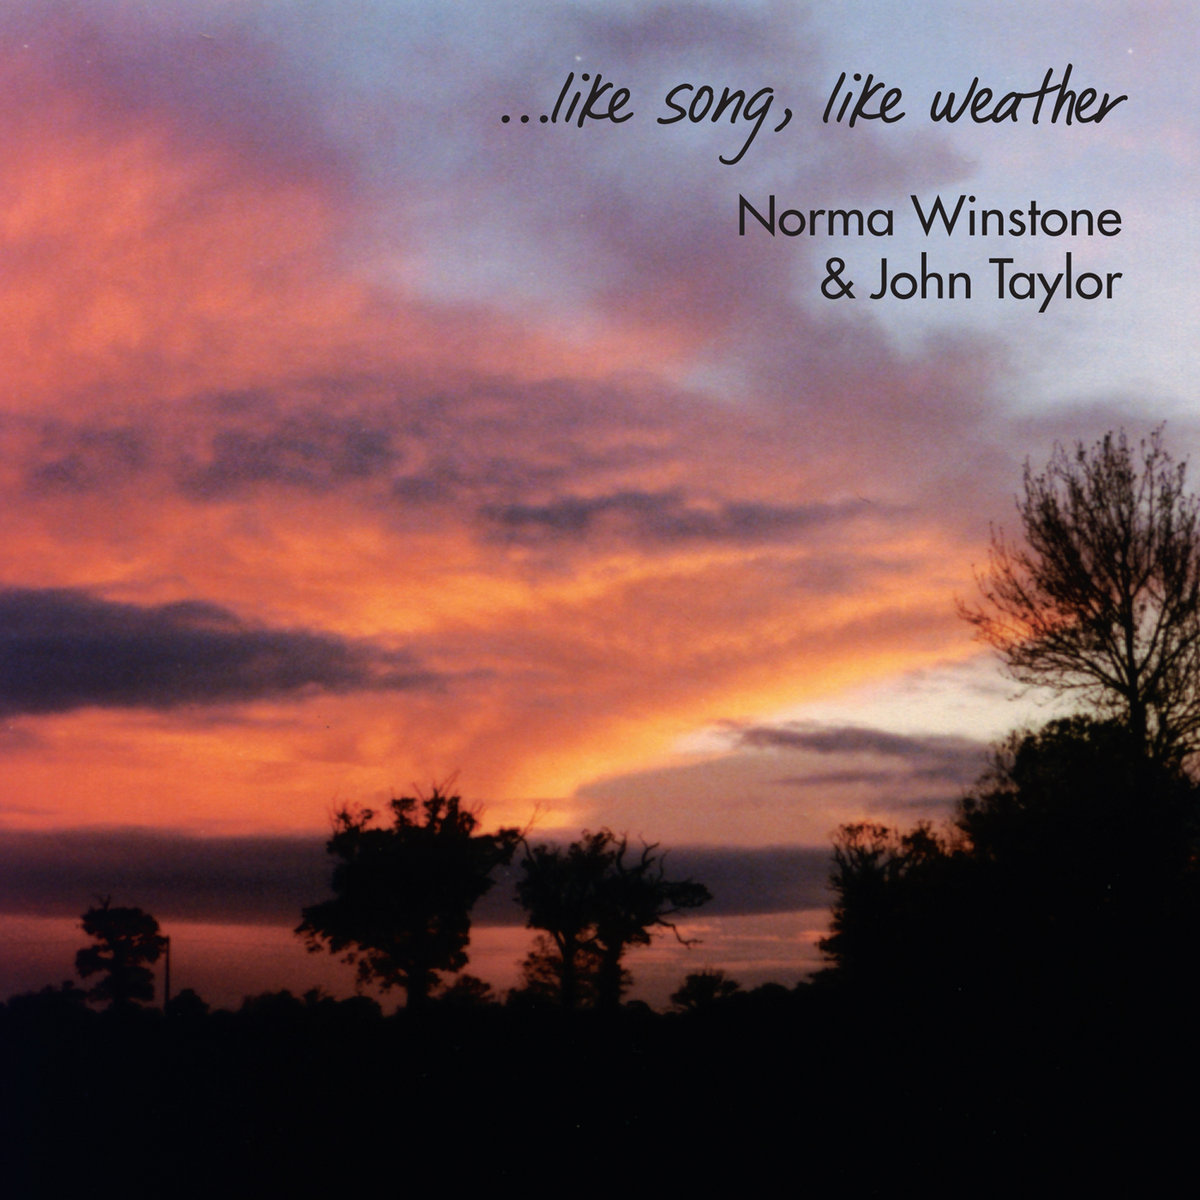 Like Weather What Like Song Like Weather Norma Winstone